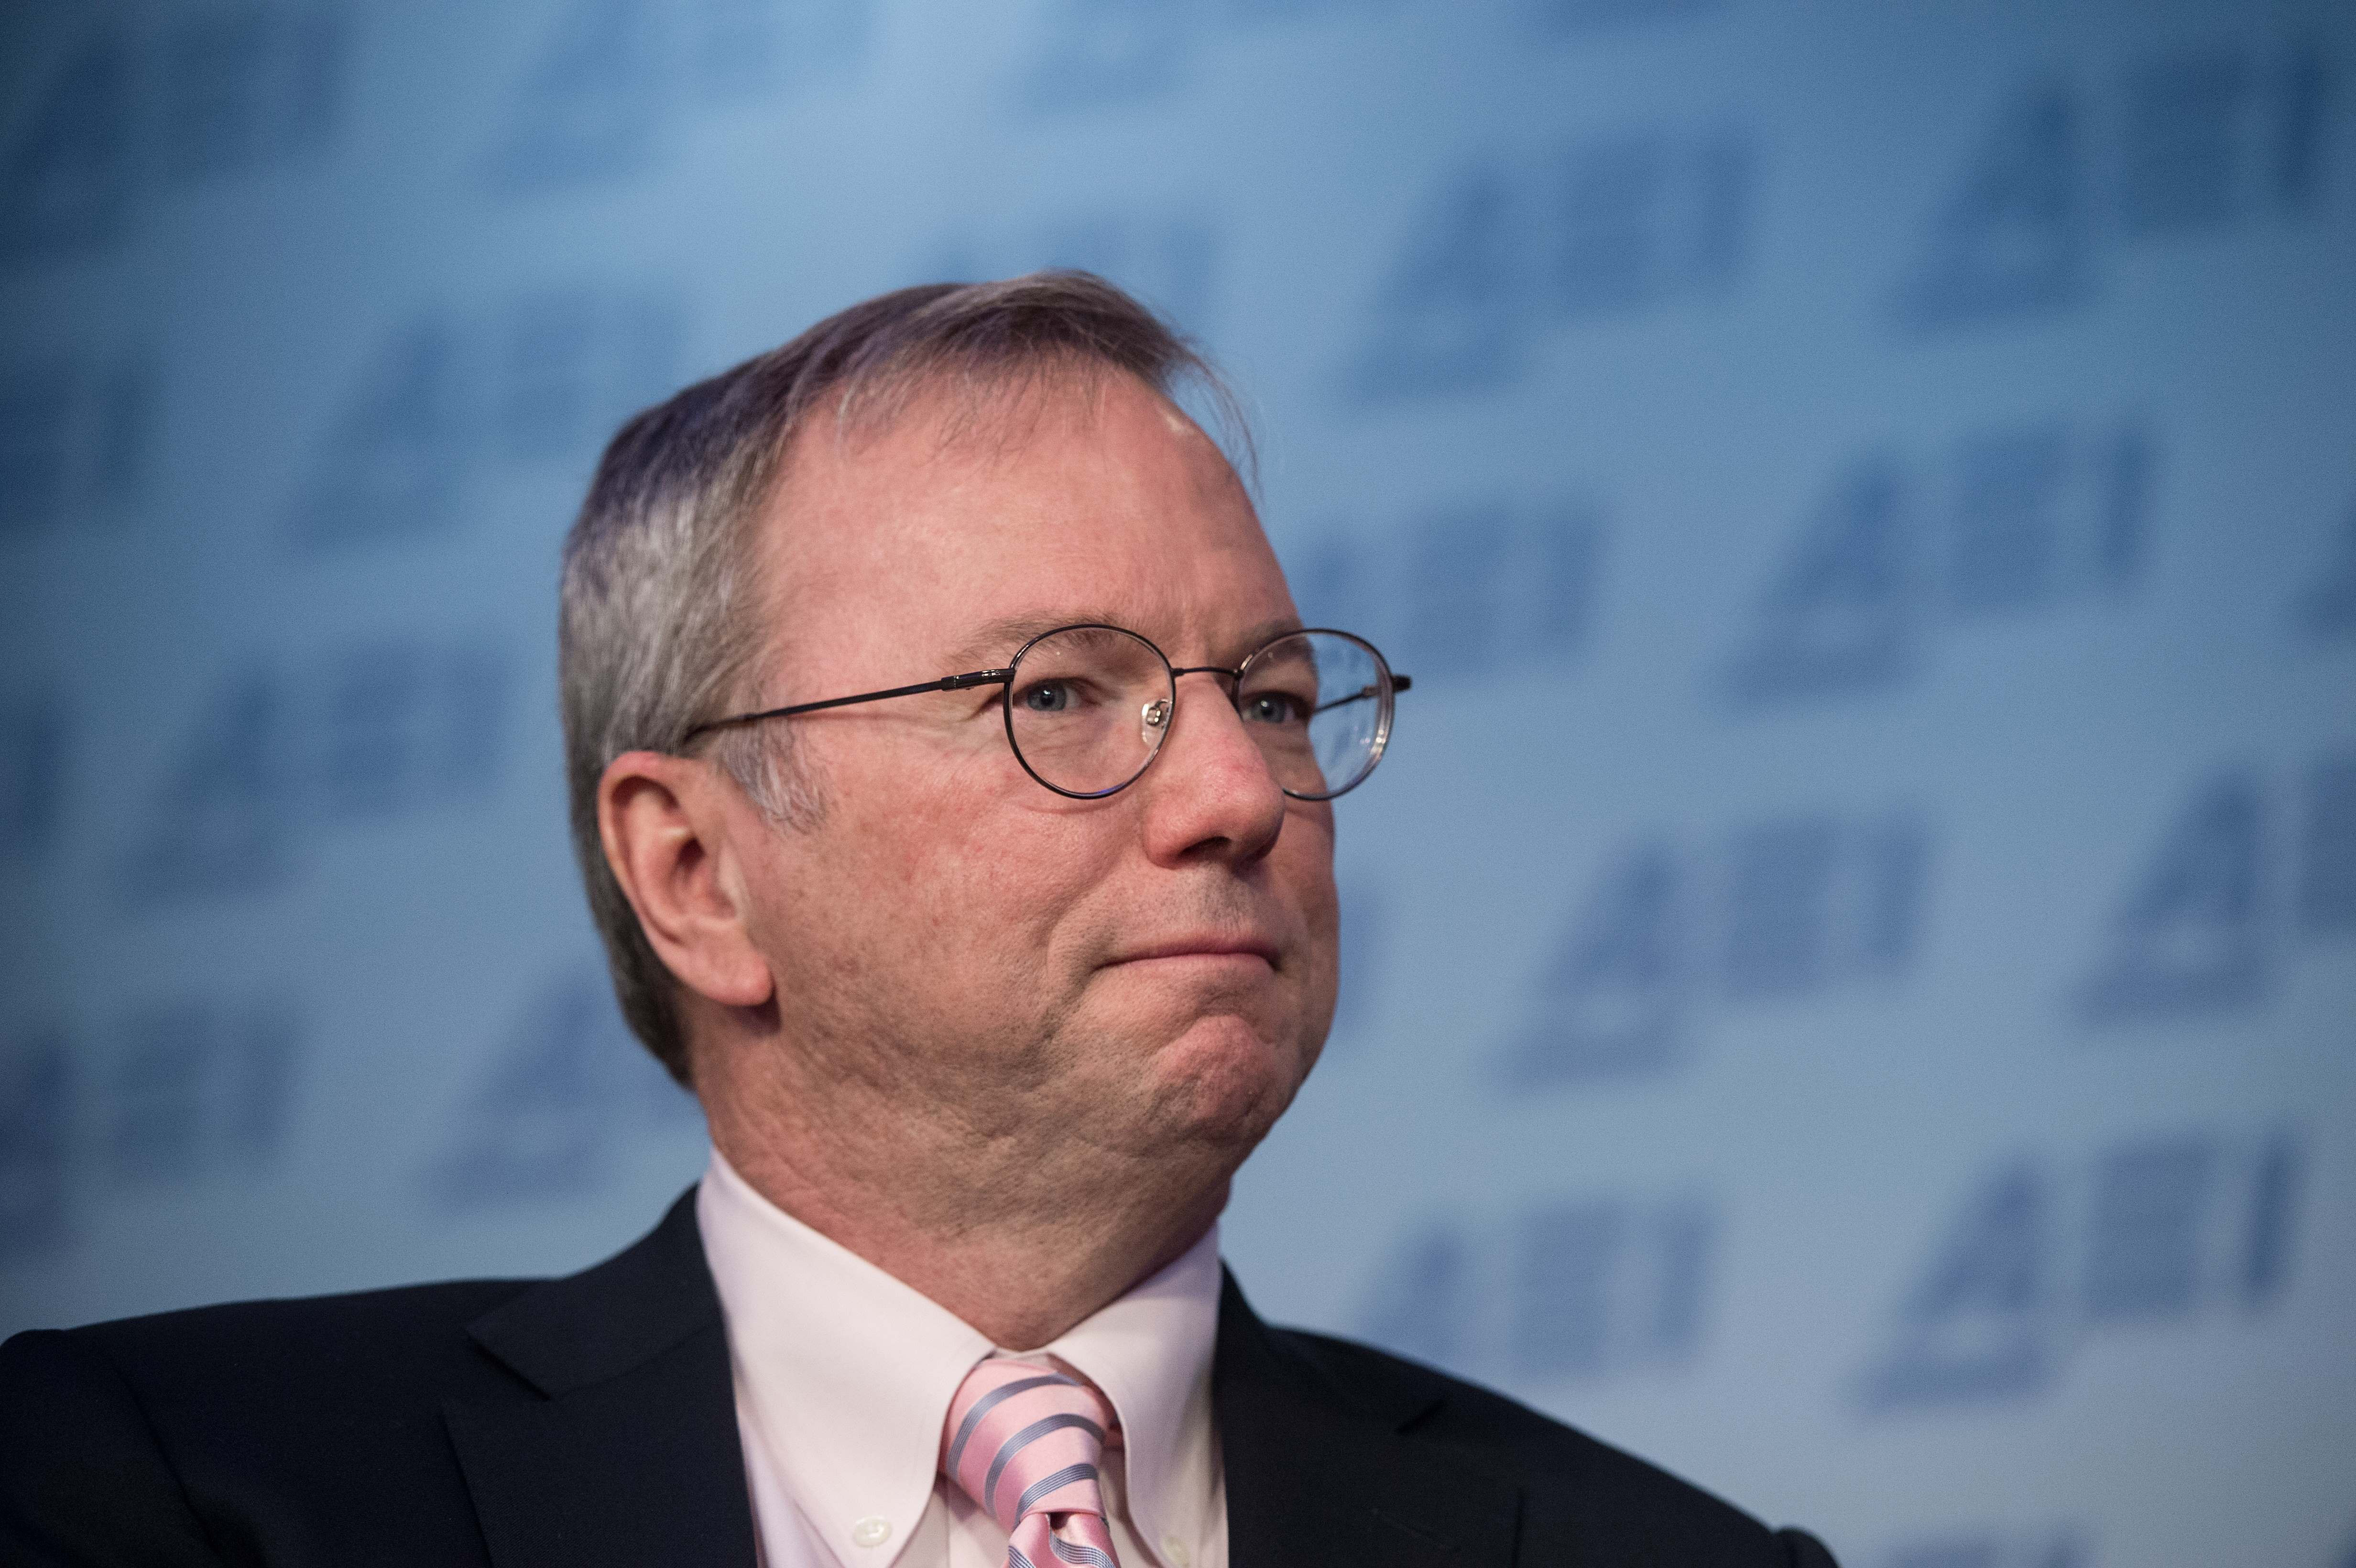 Google executive chairman Eric Schmidt speaks on technology on March 18, 2015 at the American Enterprise Institute in Washington, DC.